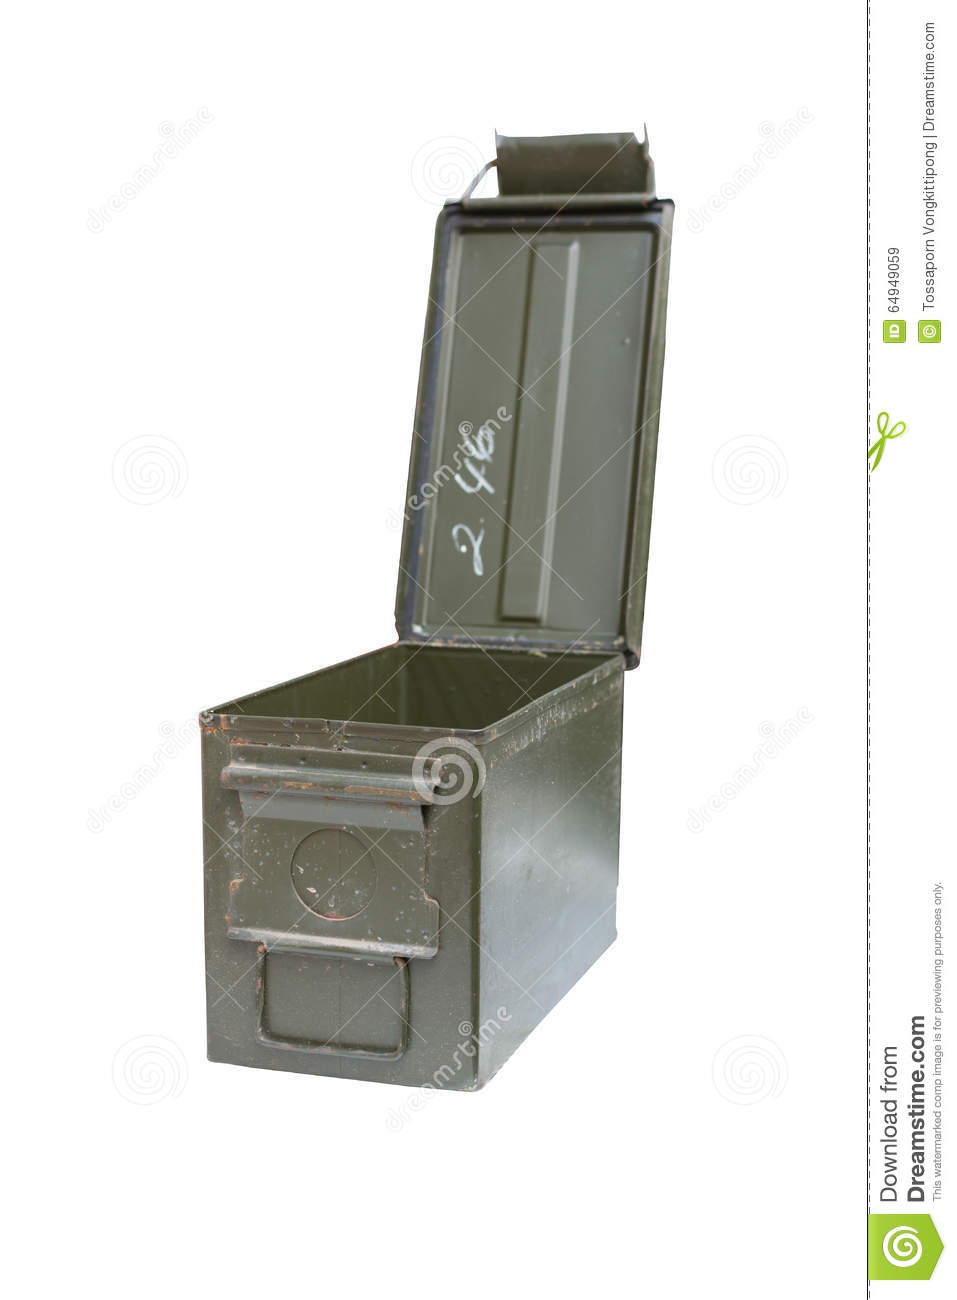 Metal bullet box stock image  Image of background, crime - 64949059